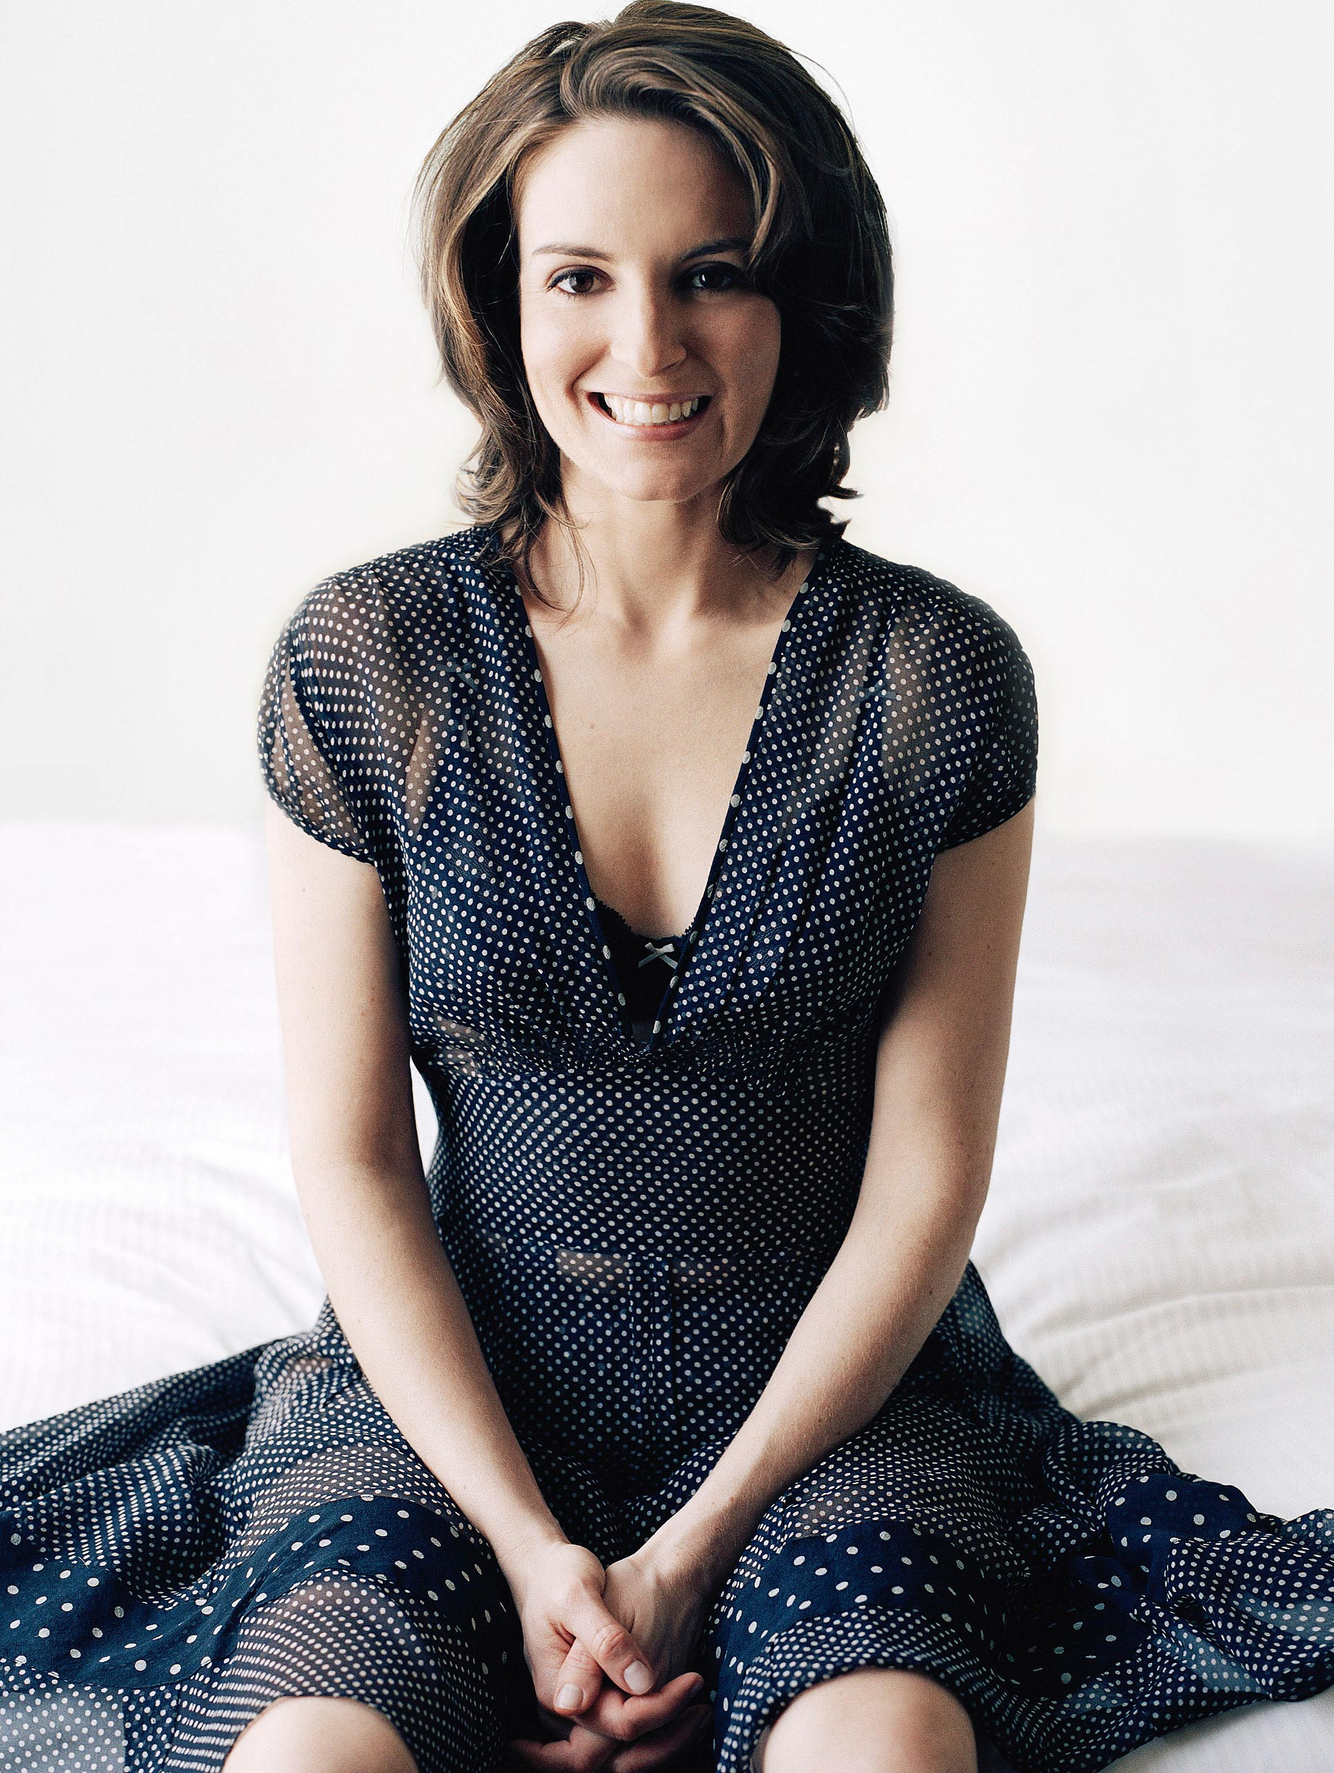 Tina-Fey_NEW-1.jpg